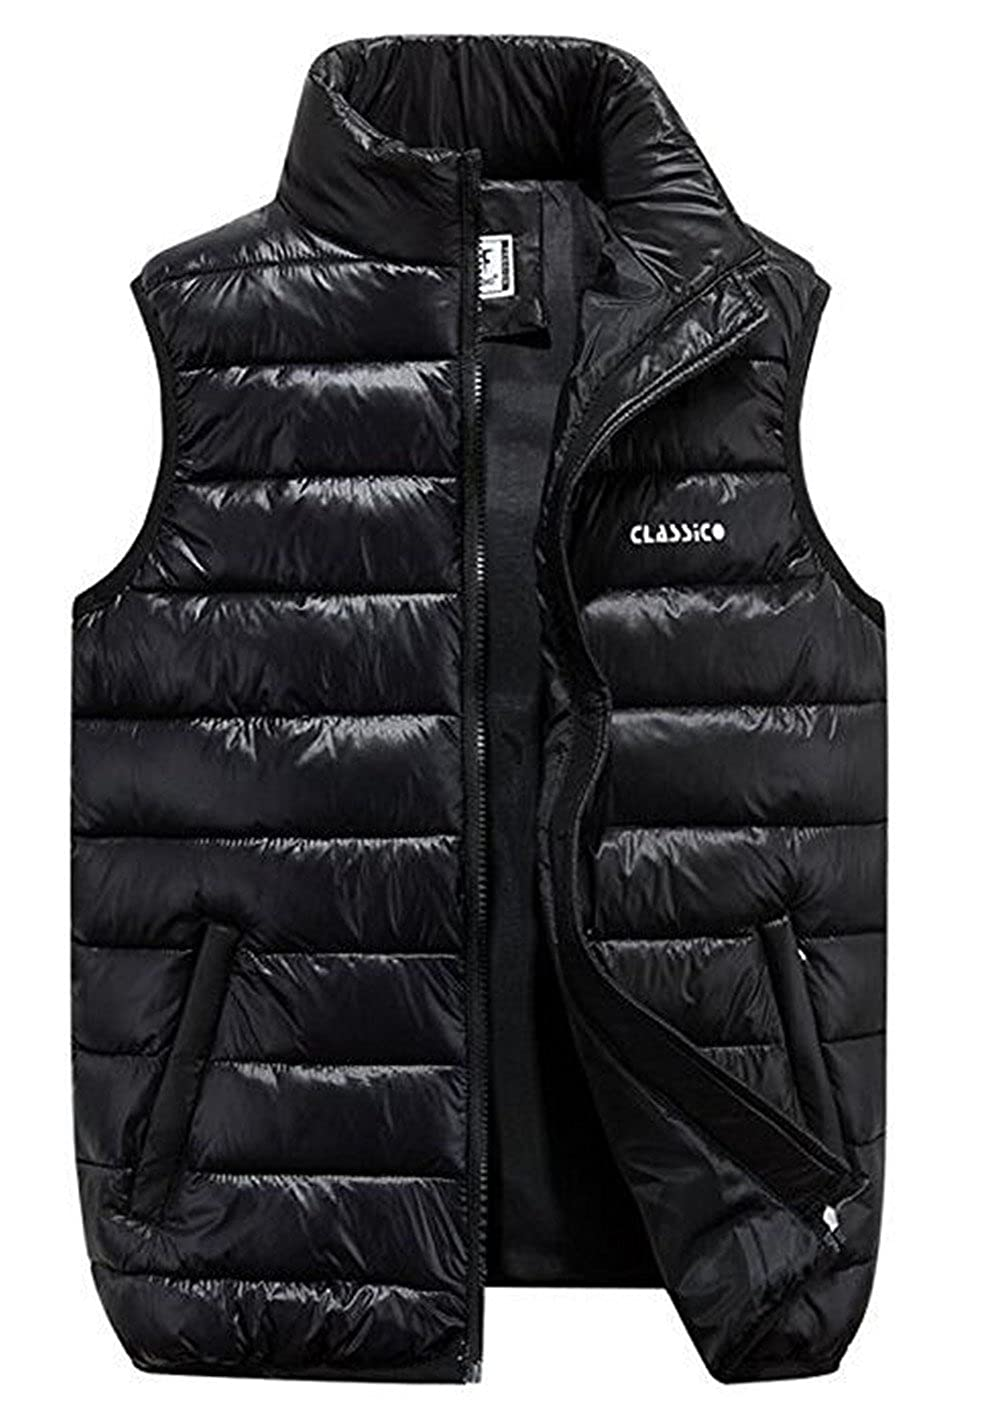 897d4c86c04cb Men s Winter Warm Puffer Vest Outerwear Lightweight Quilted Puffer  Sleeveless Jacket Gilets Outdoot Vest  Amazon.co.uk  Clothing